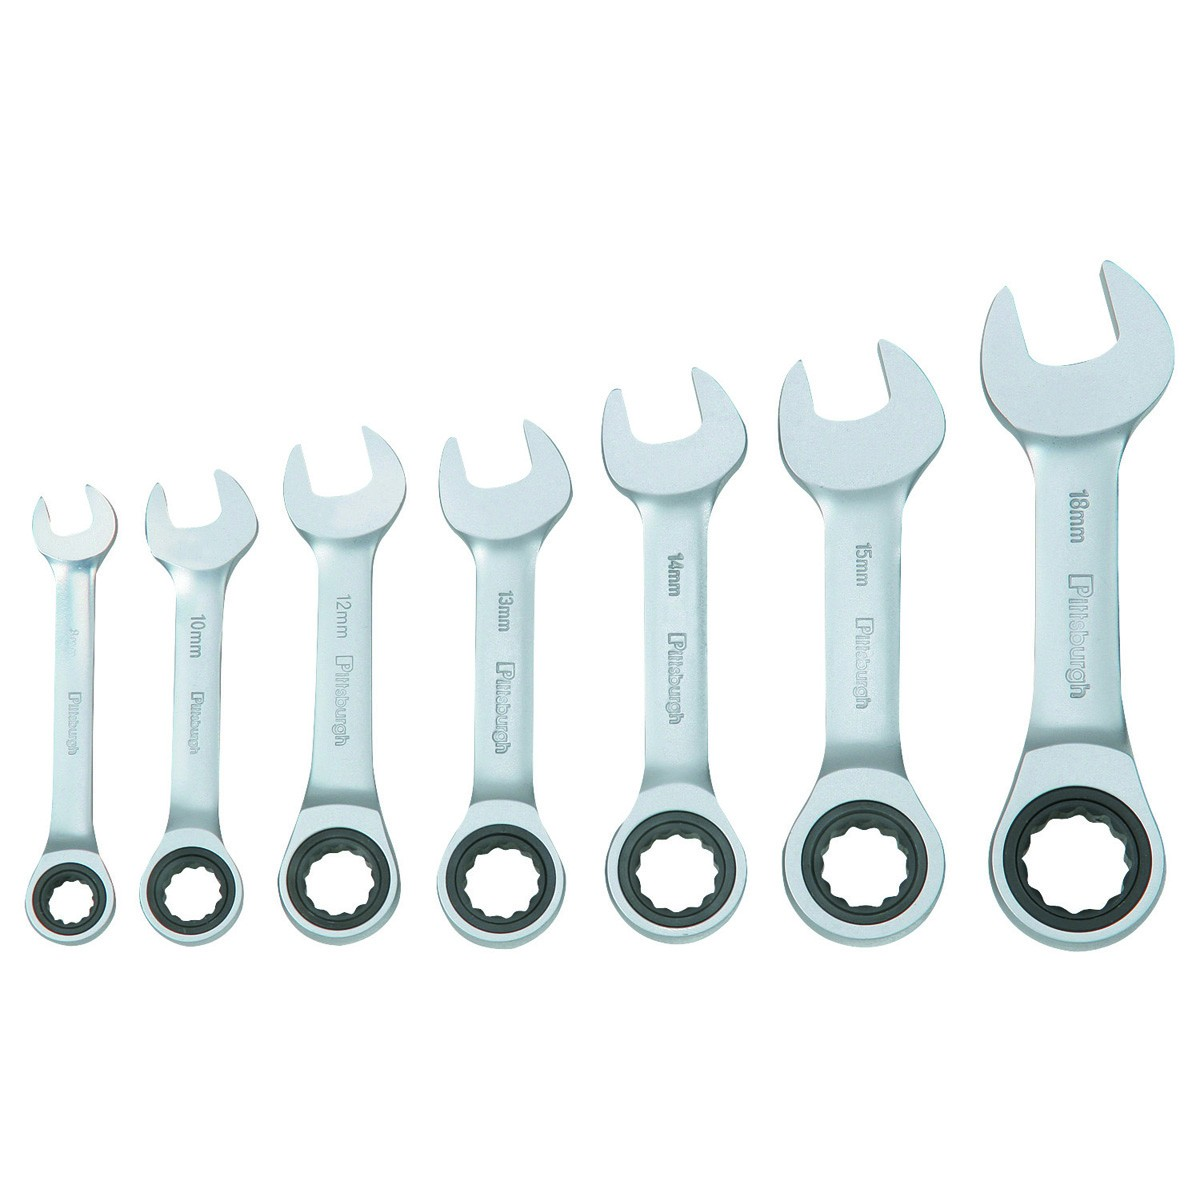 7 Pc Metric Stubby Combination Ratcheting Wrench Set